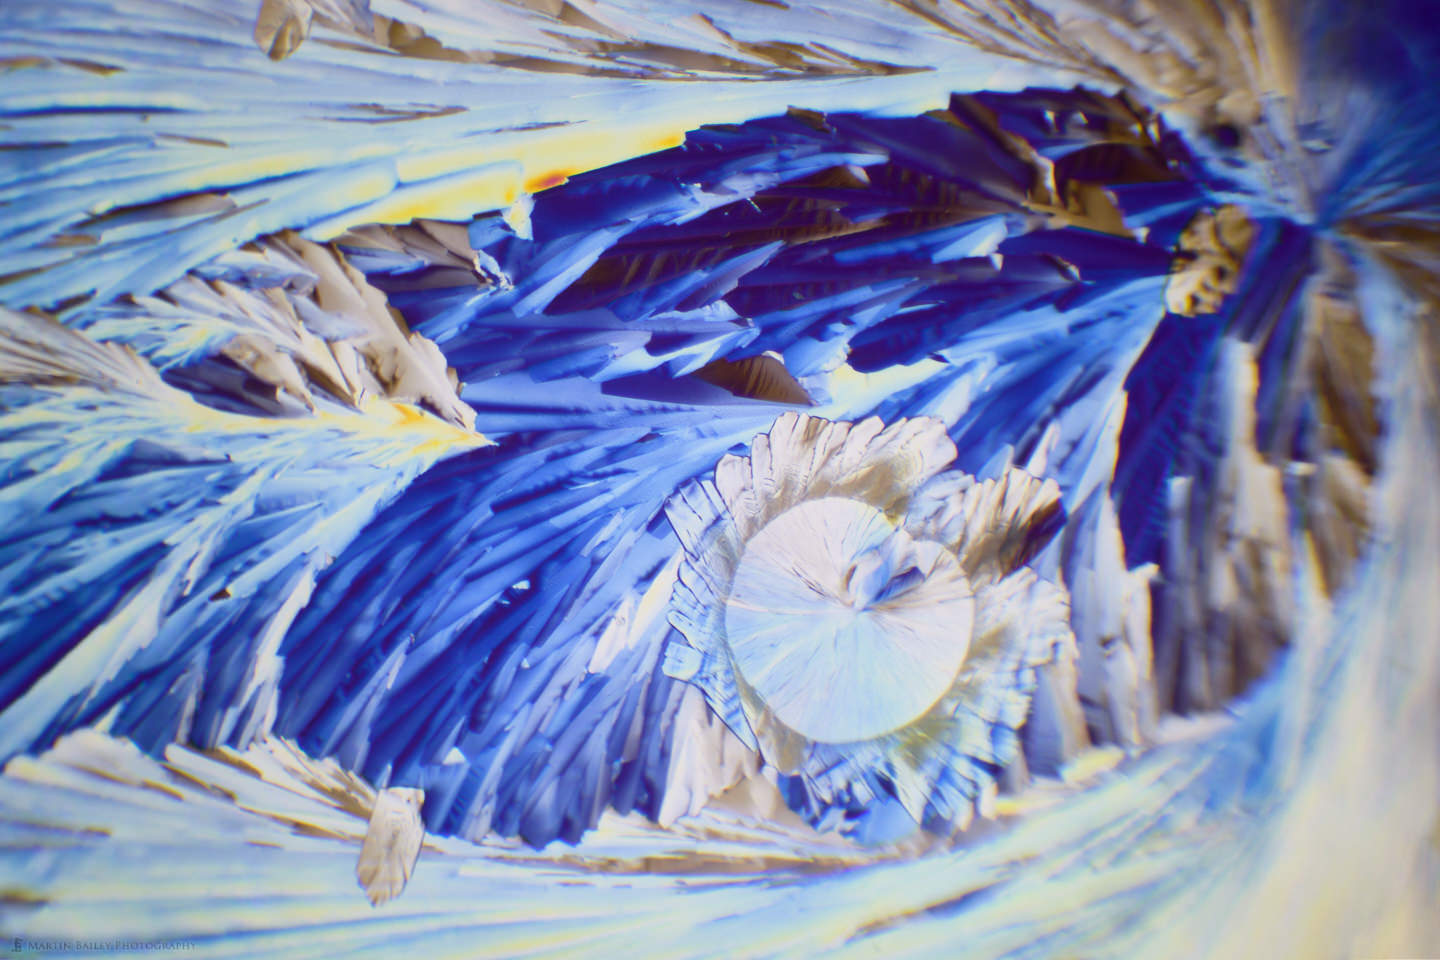 Ice Pheonix Space Cave (Citric Acid Crystals 40X 19 Frames)